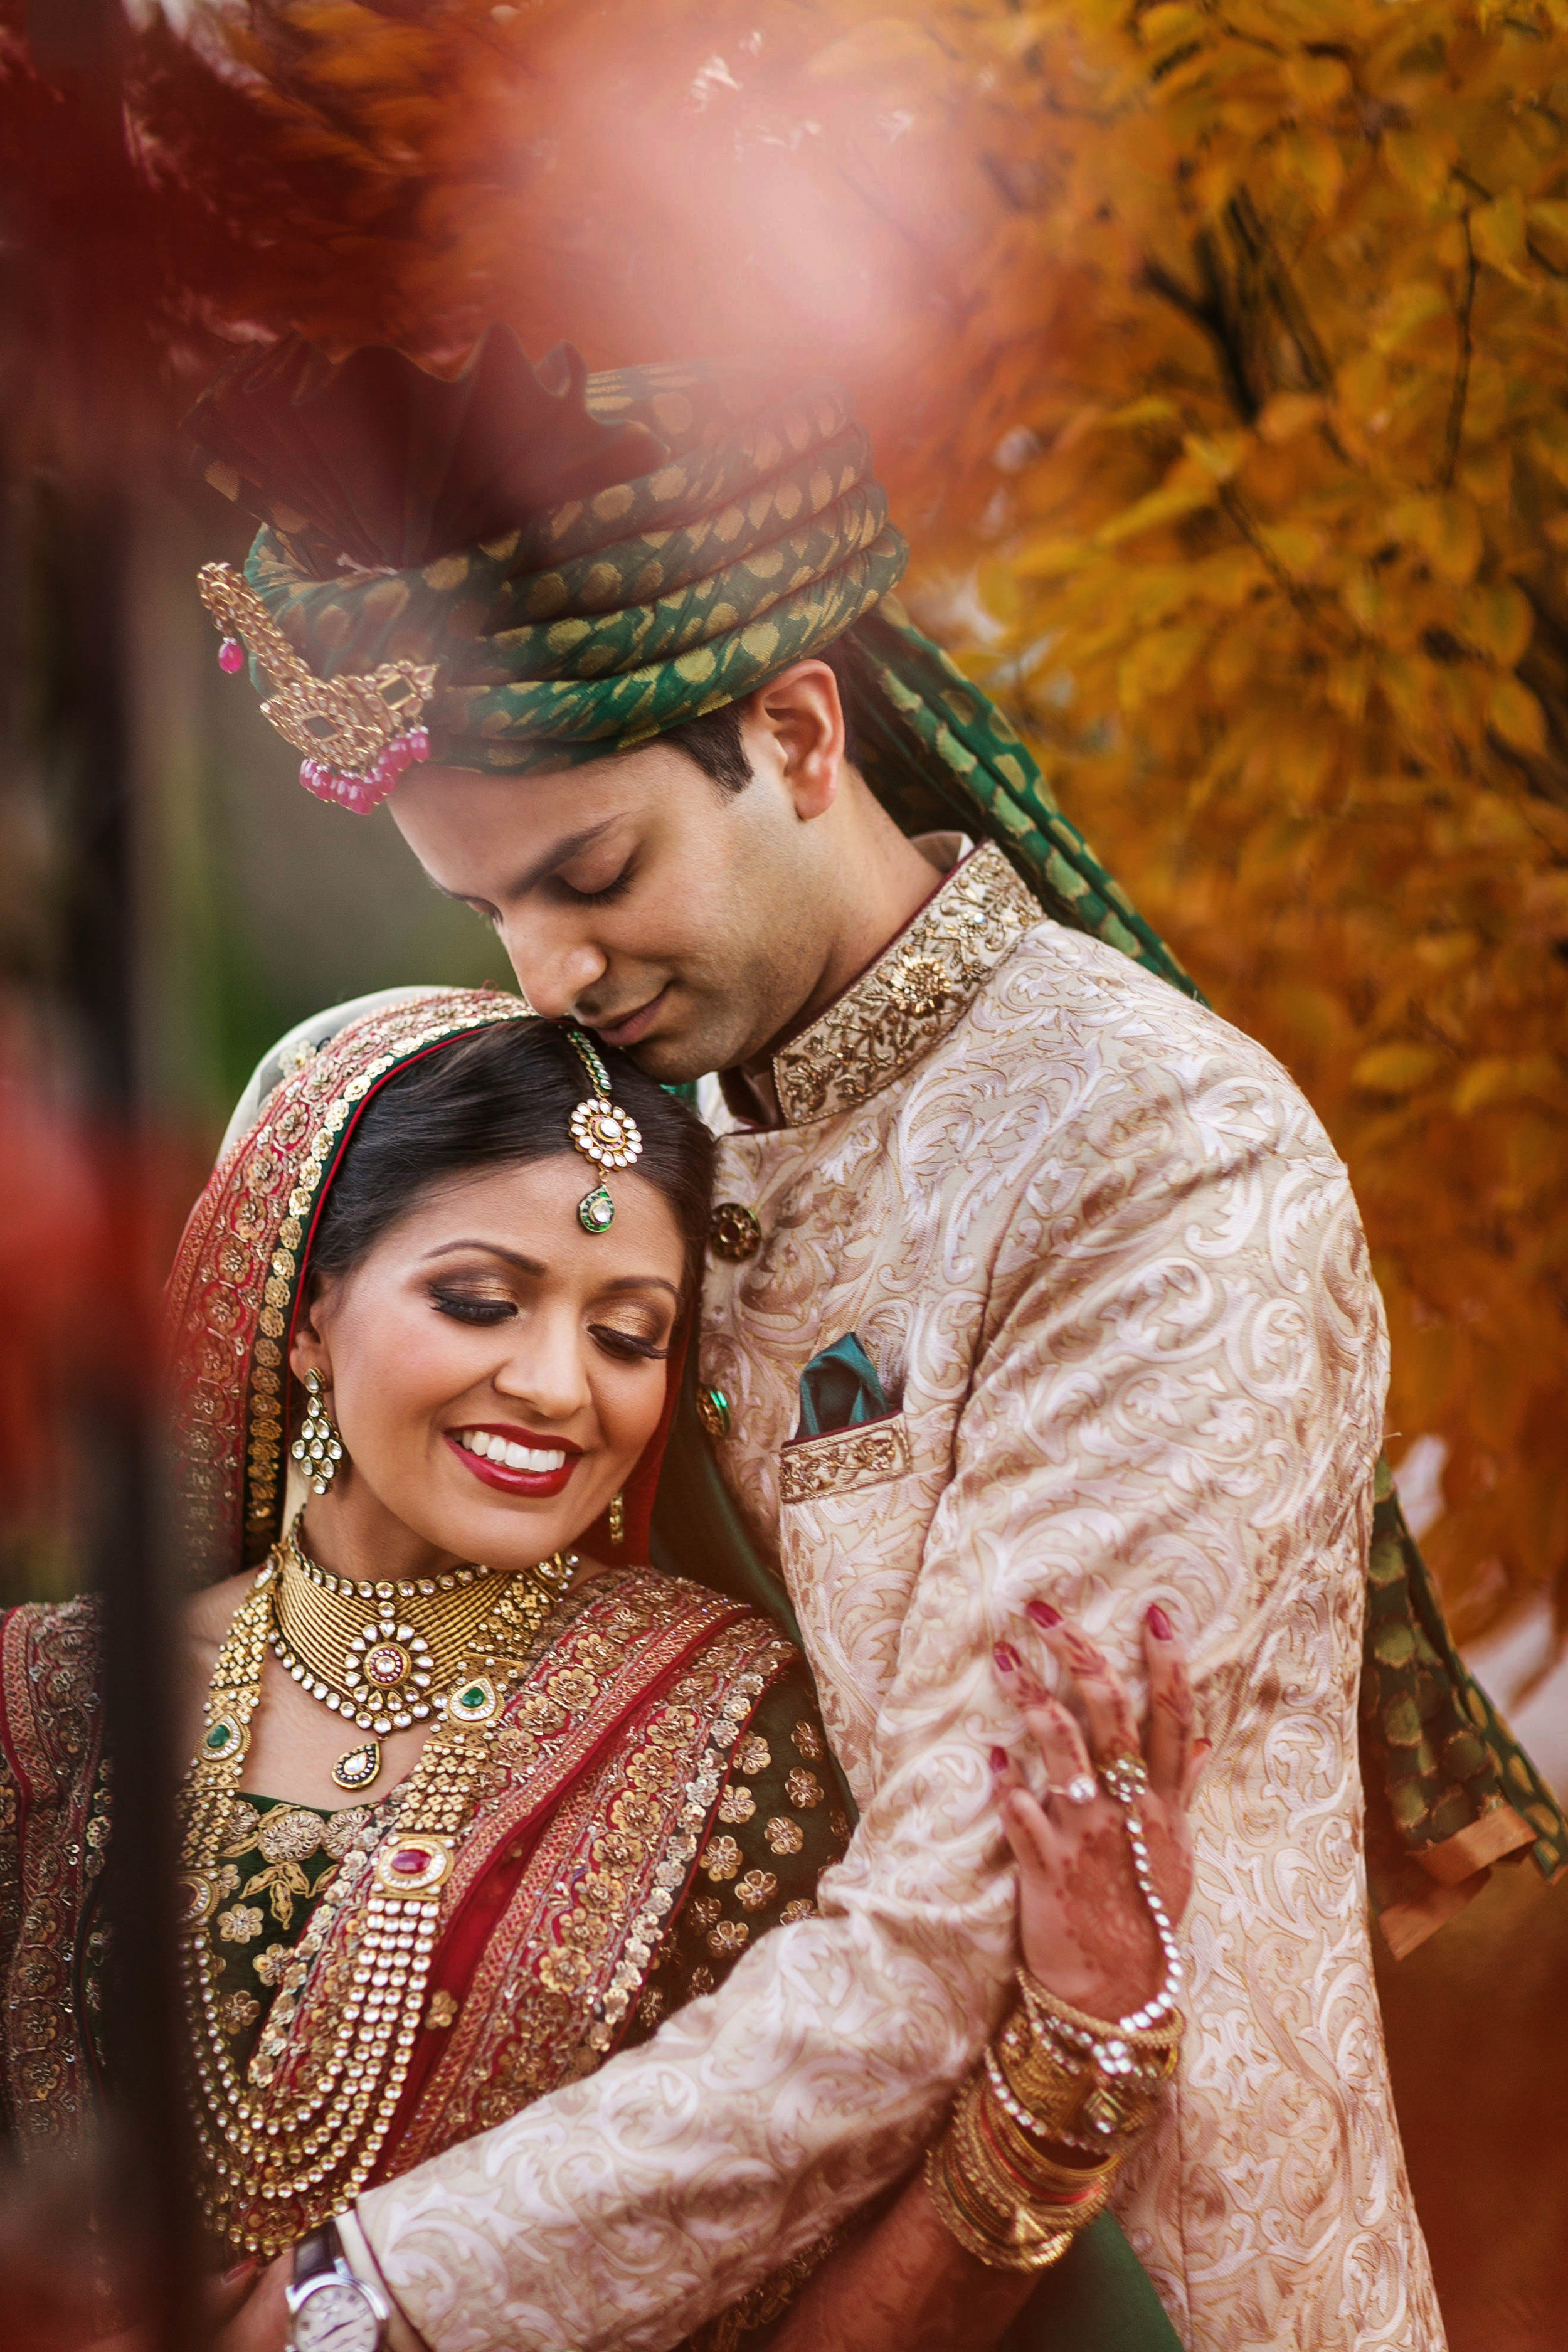 HAPPY INDIAN COUPLE AT SOUTH ASIAN WEDDING.JPG